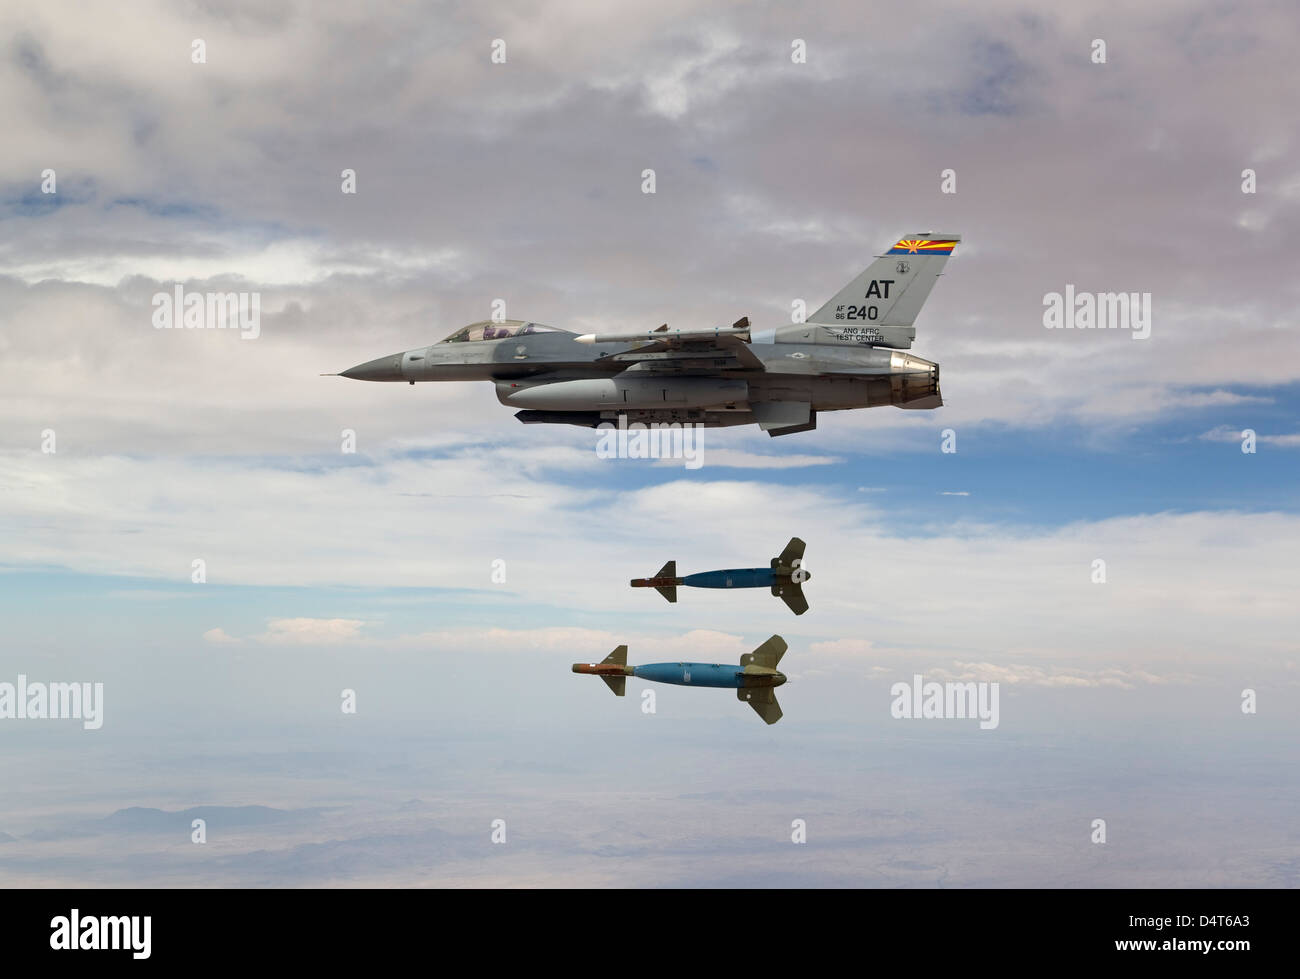 An F-16 Fighting Falcon releases two GBU-24 laser guided bombs. - Stock Image